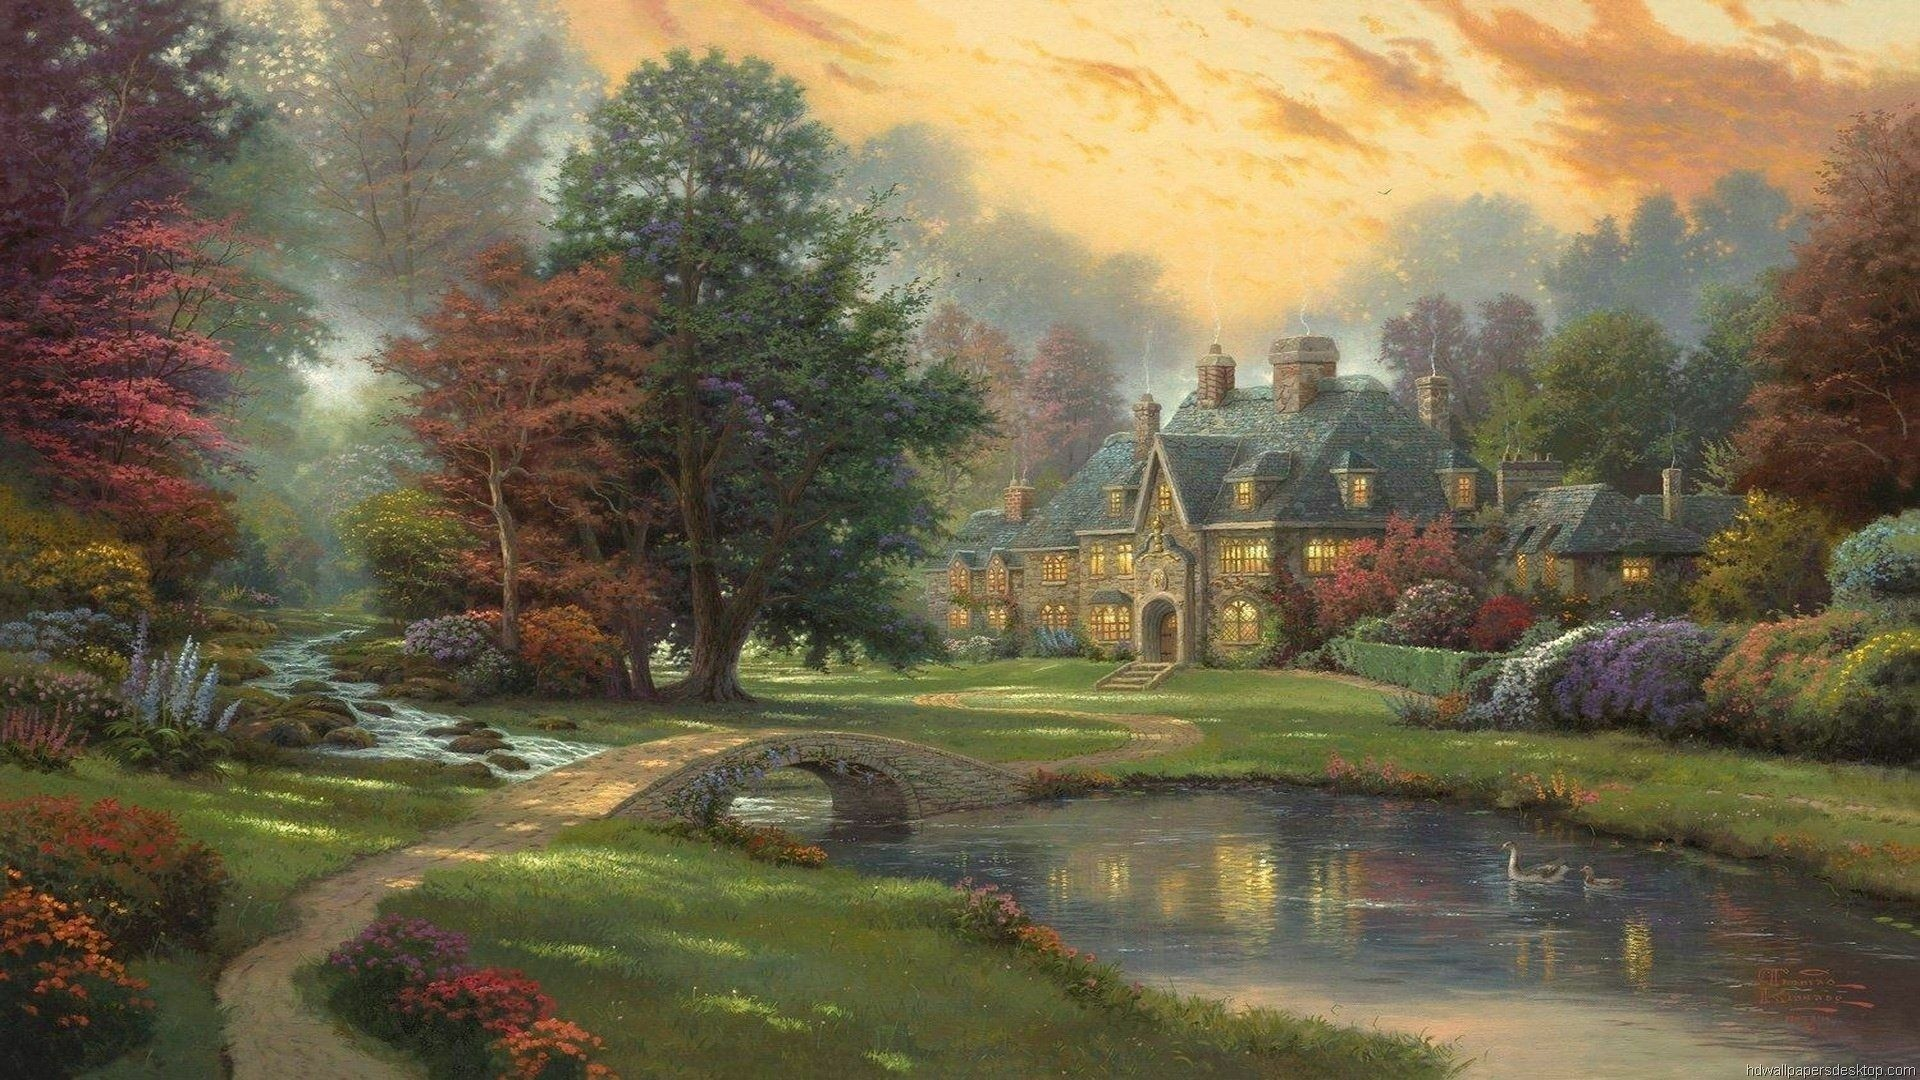 House By The River Art a wallpaper